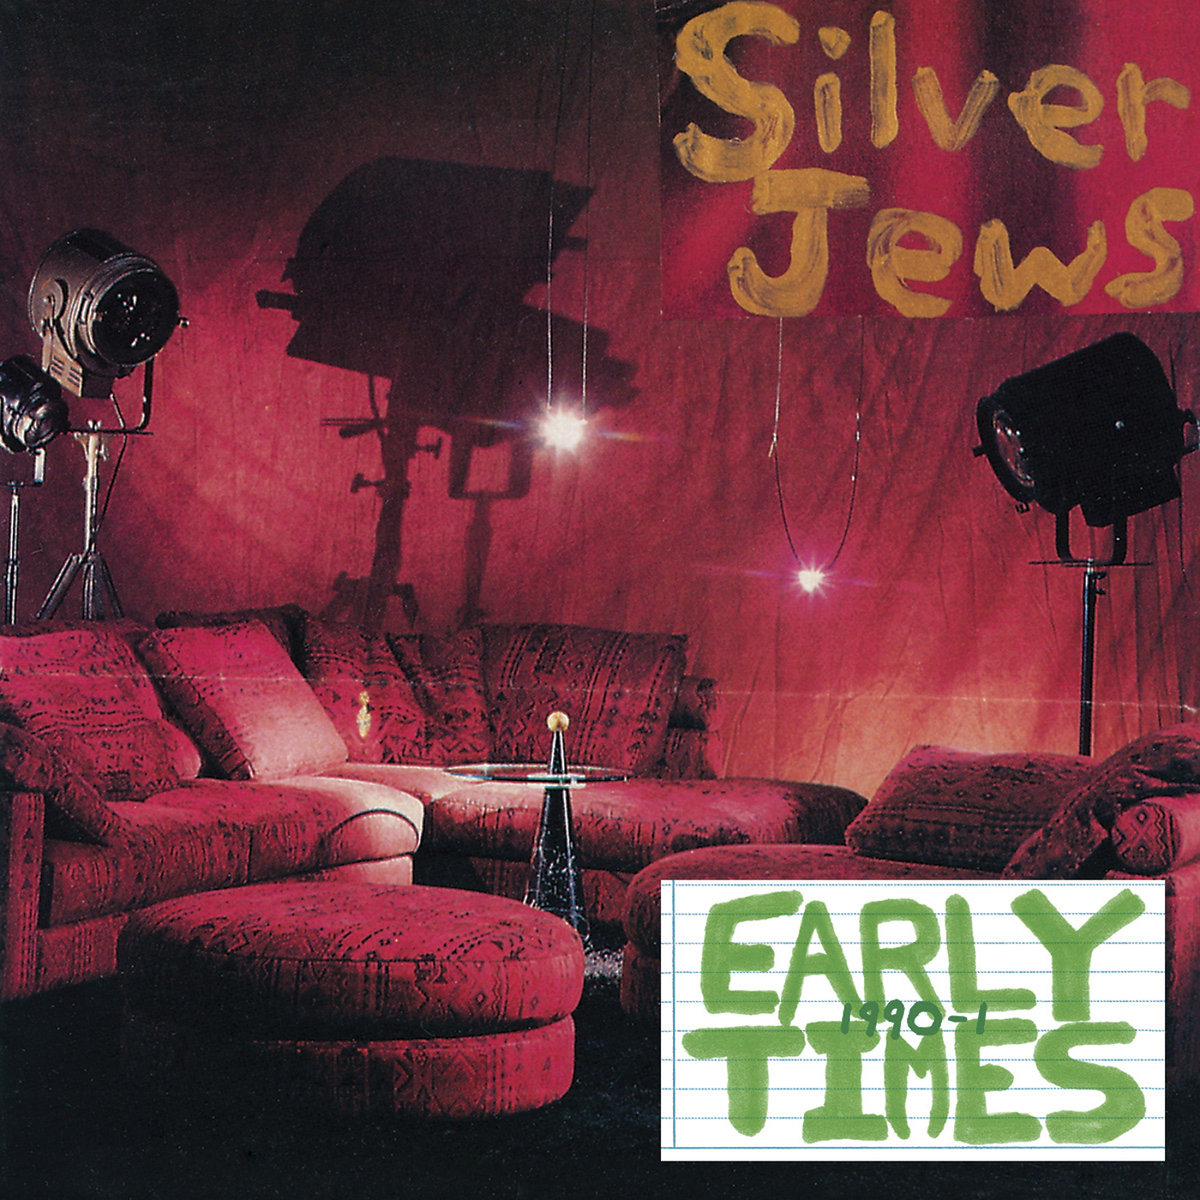 silver jews discography Early Times